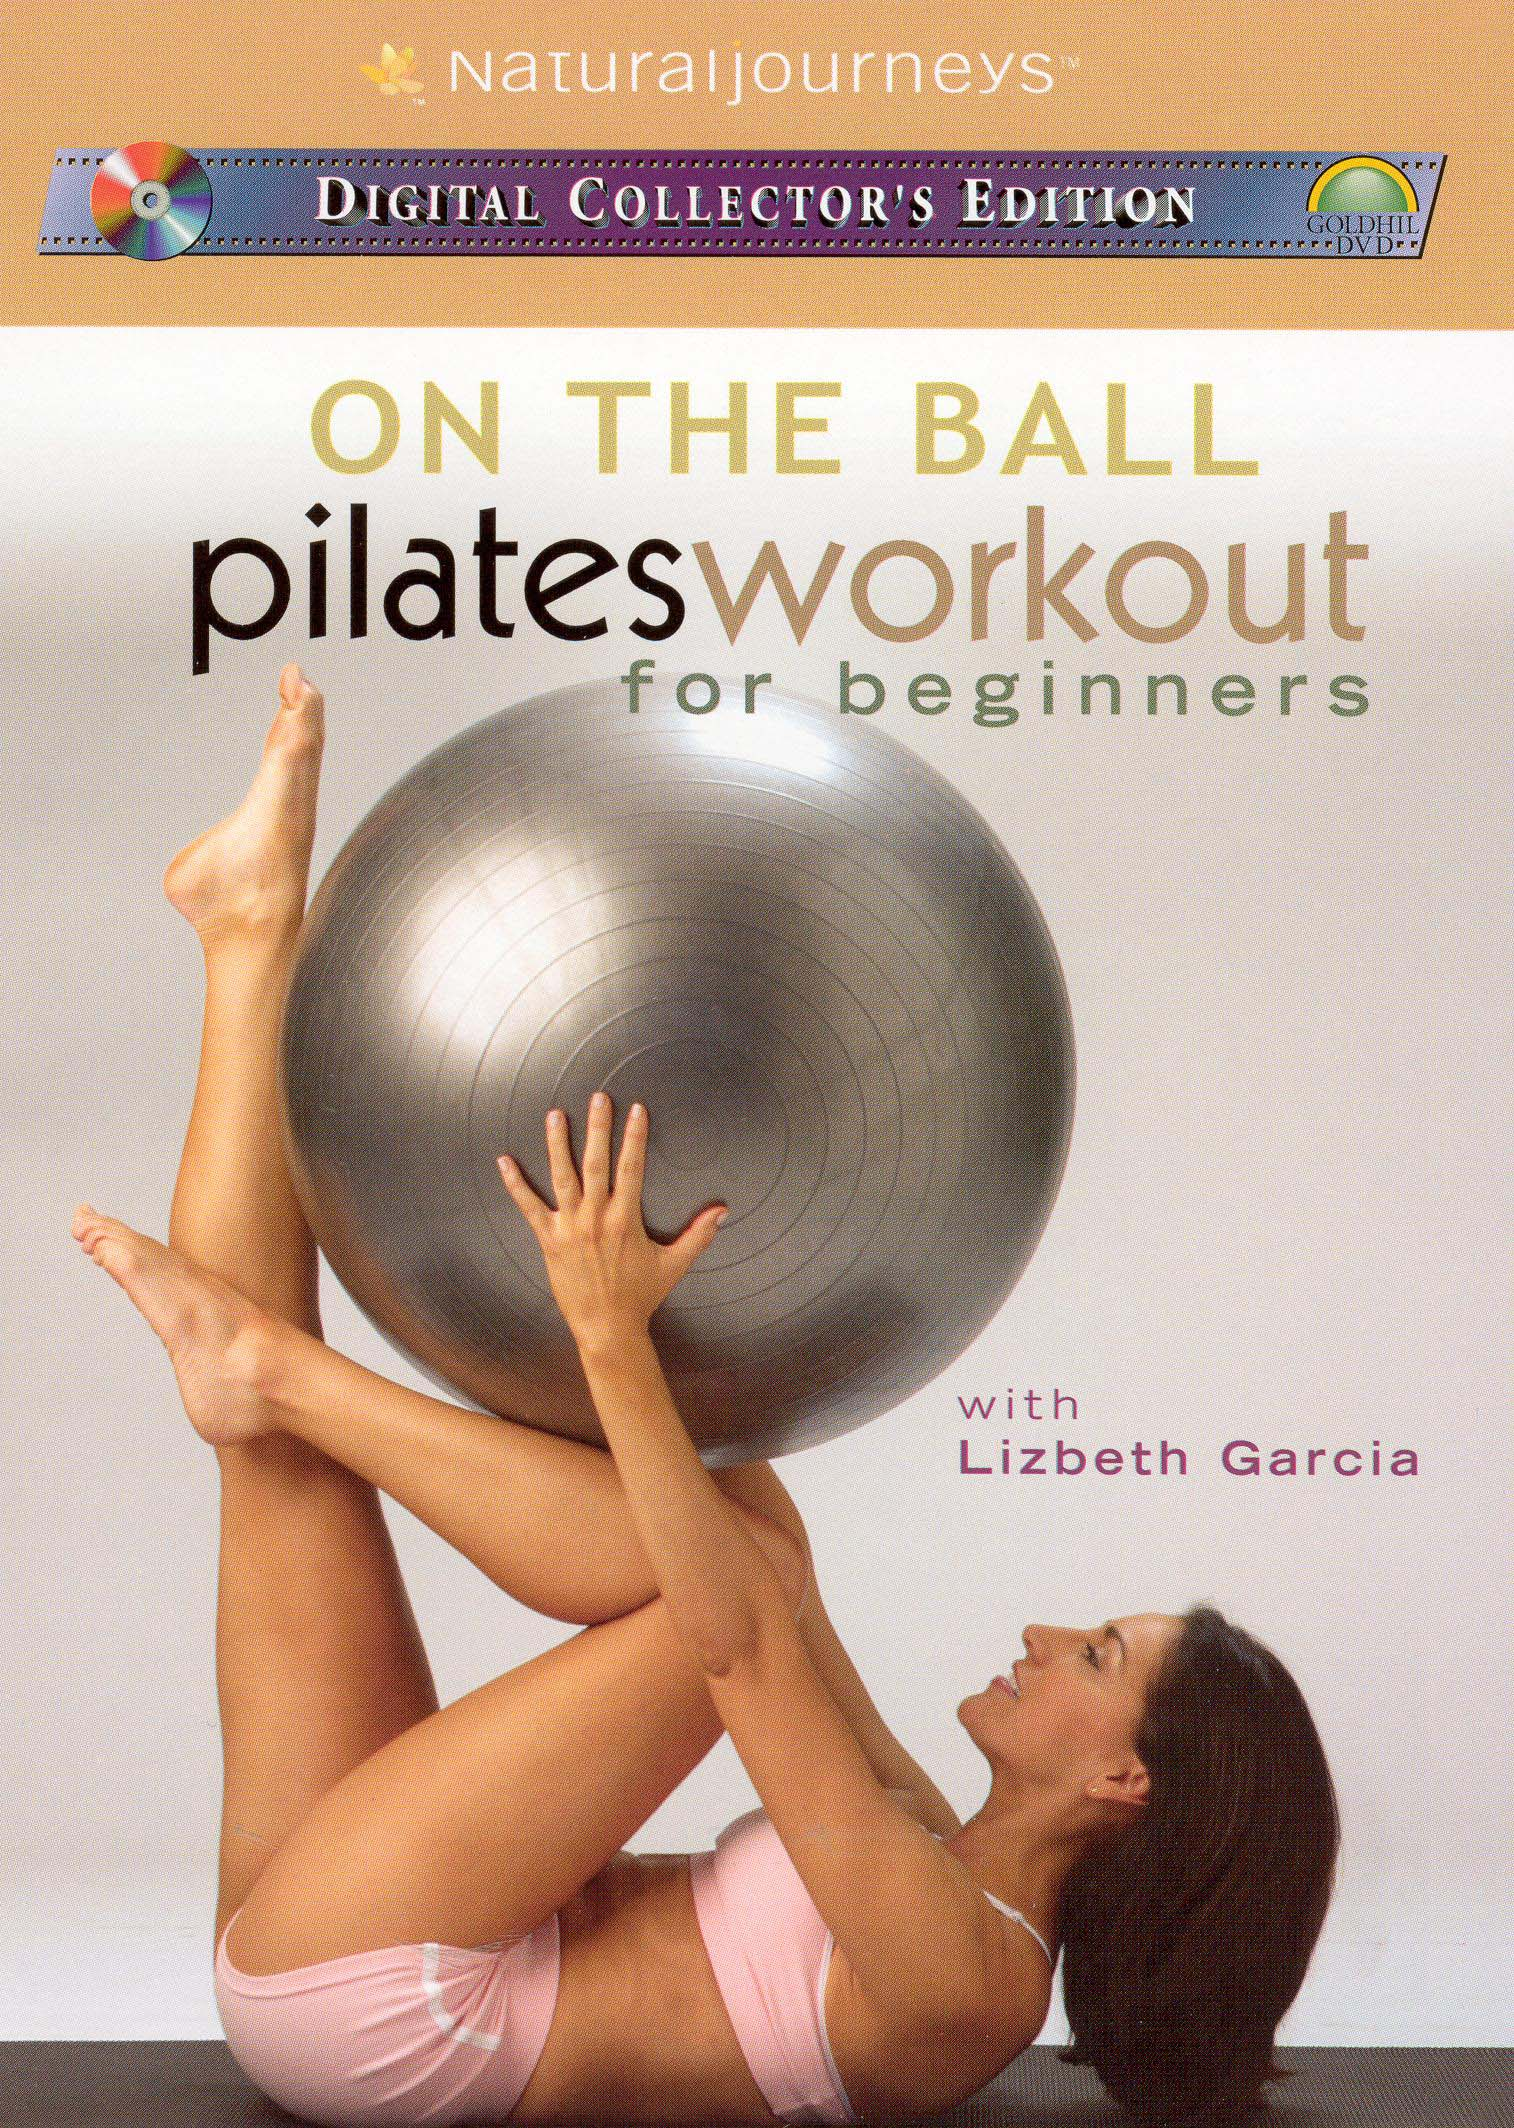 On the Ball: Pilates Workout for Beginners with Lizbeth Garcia